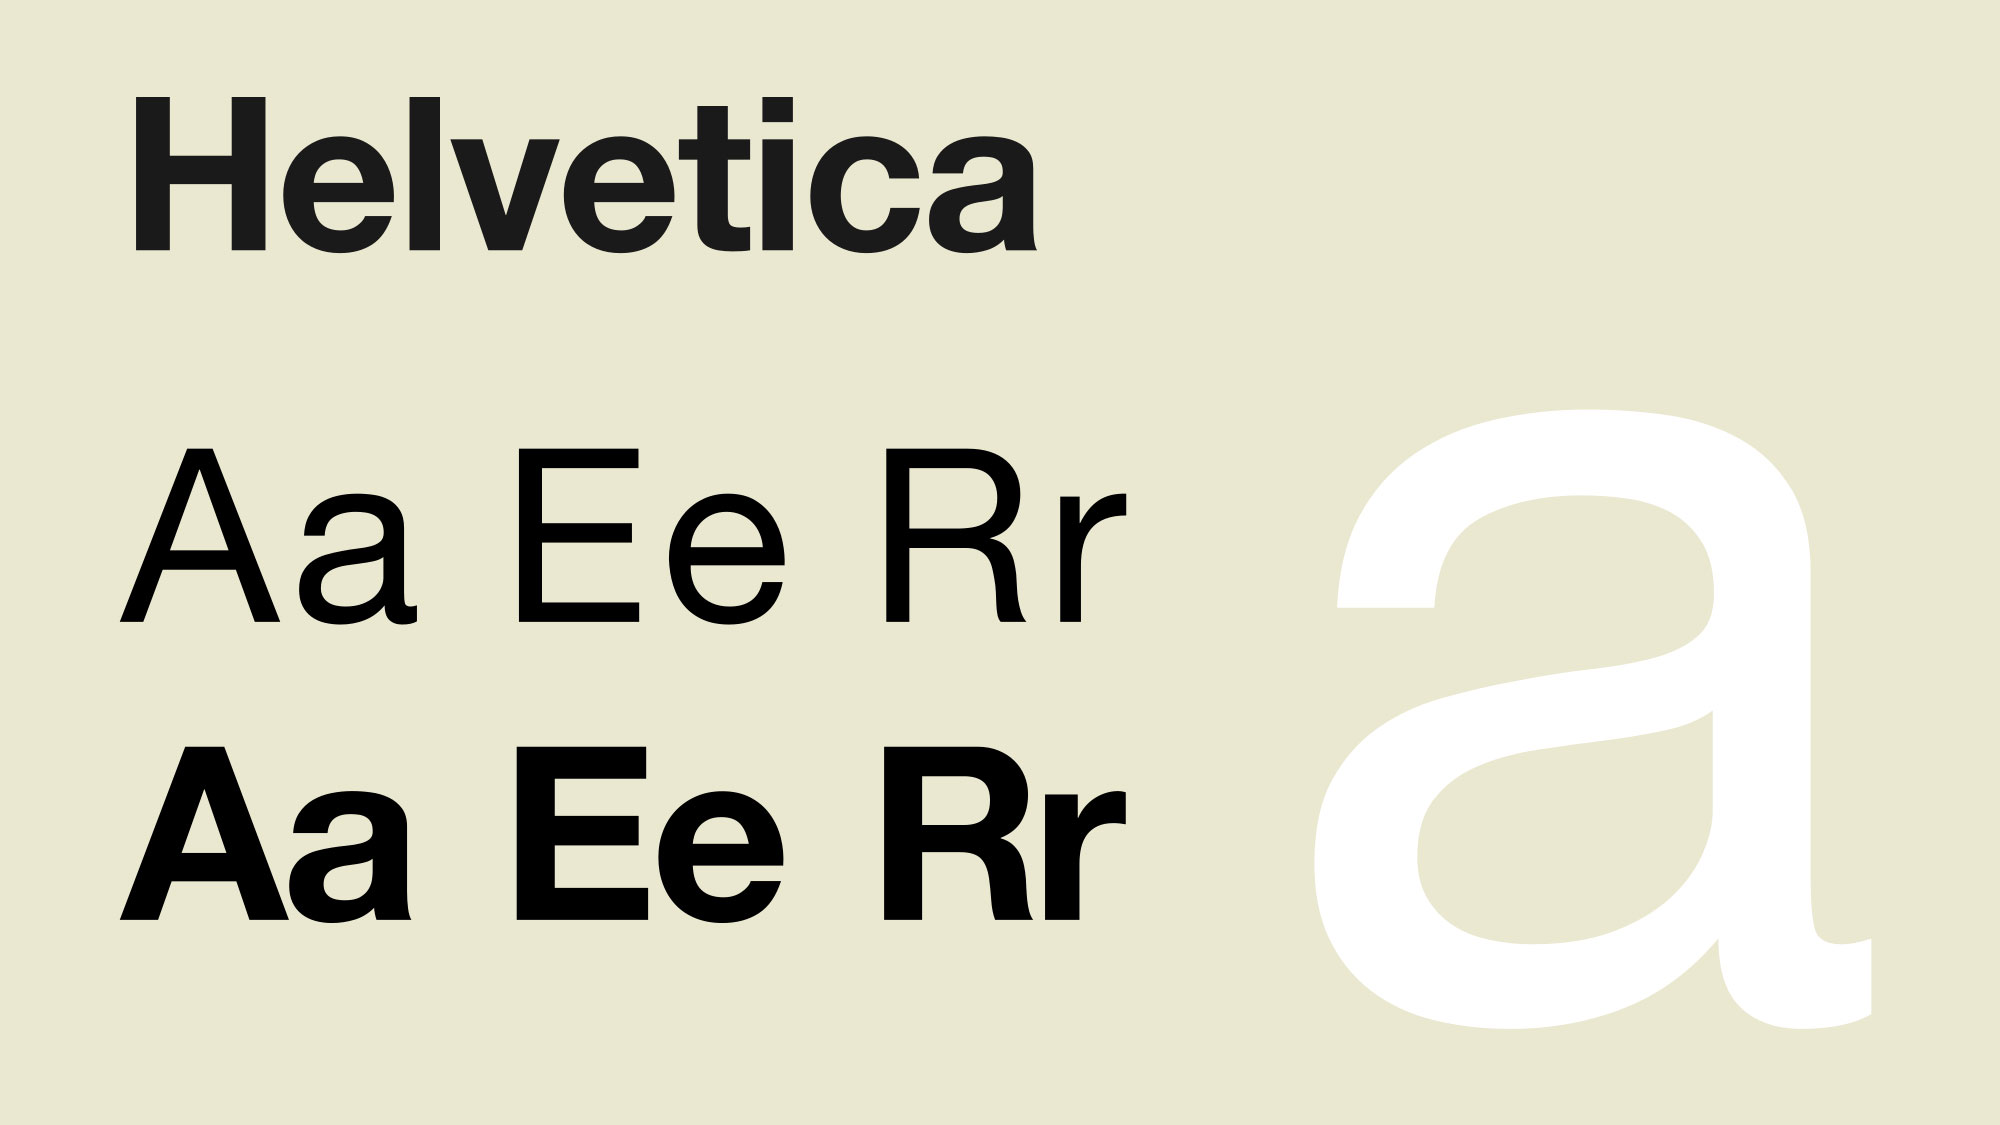 how to add helvetica neue font in html